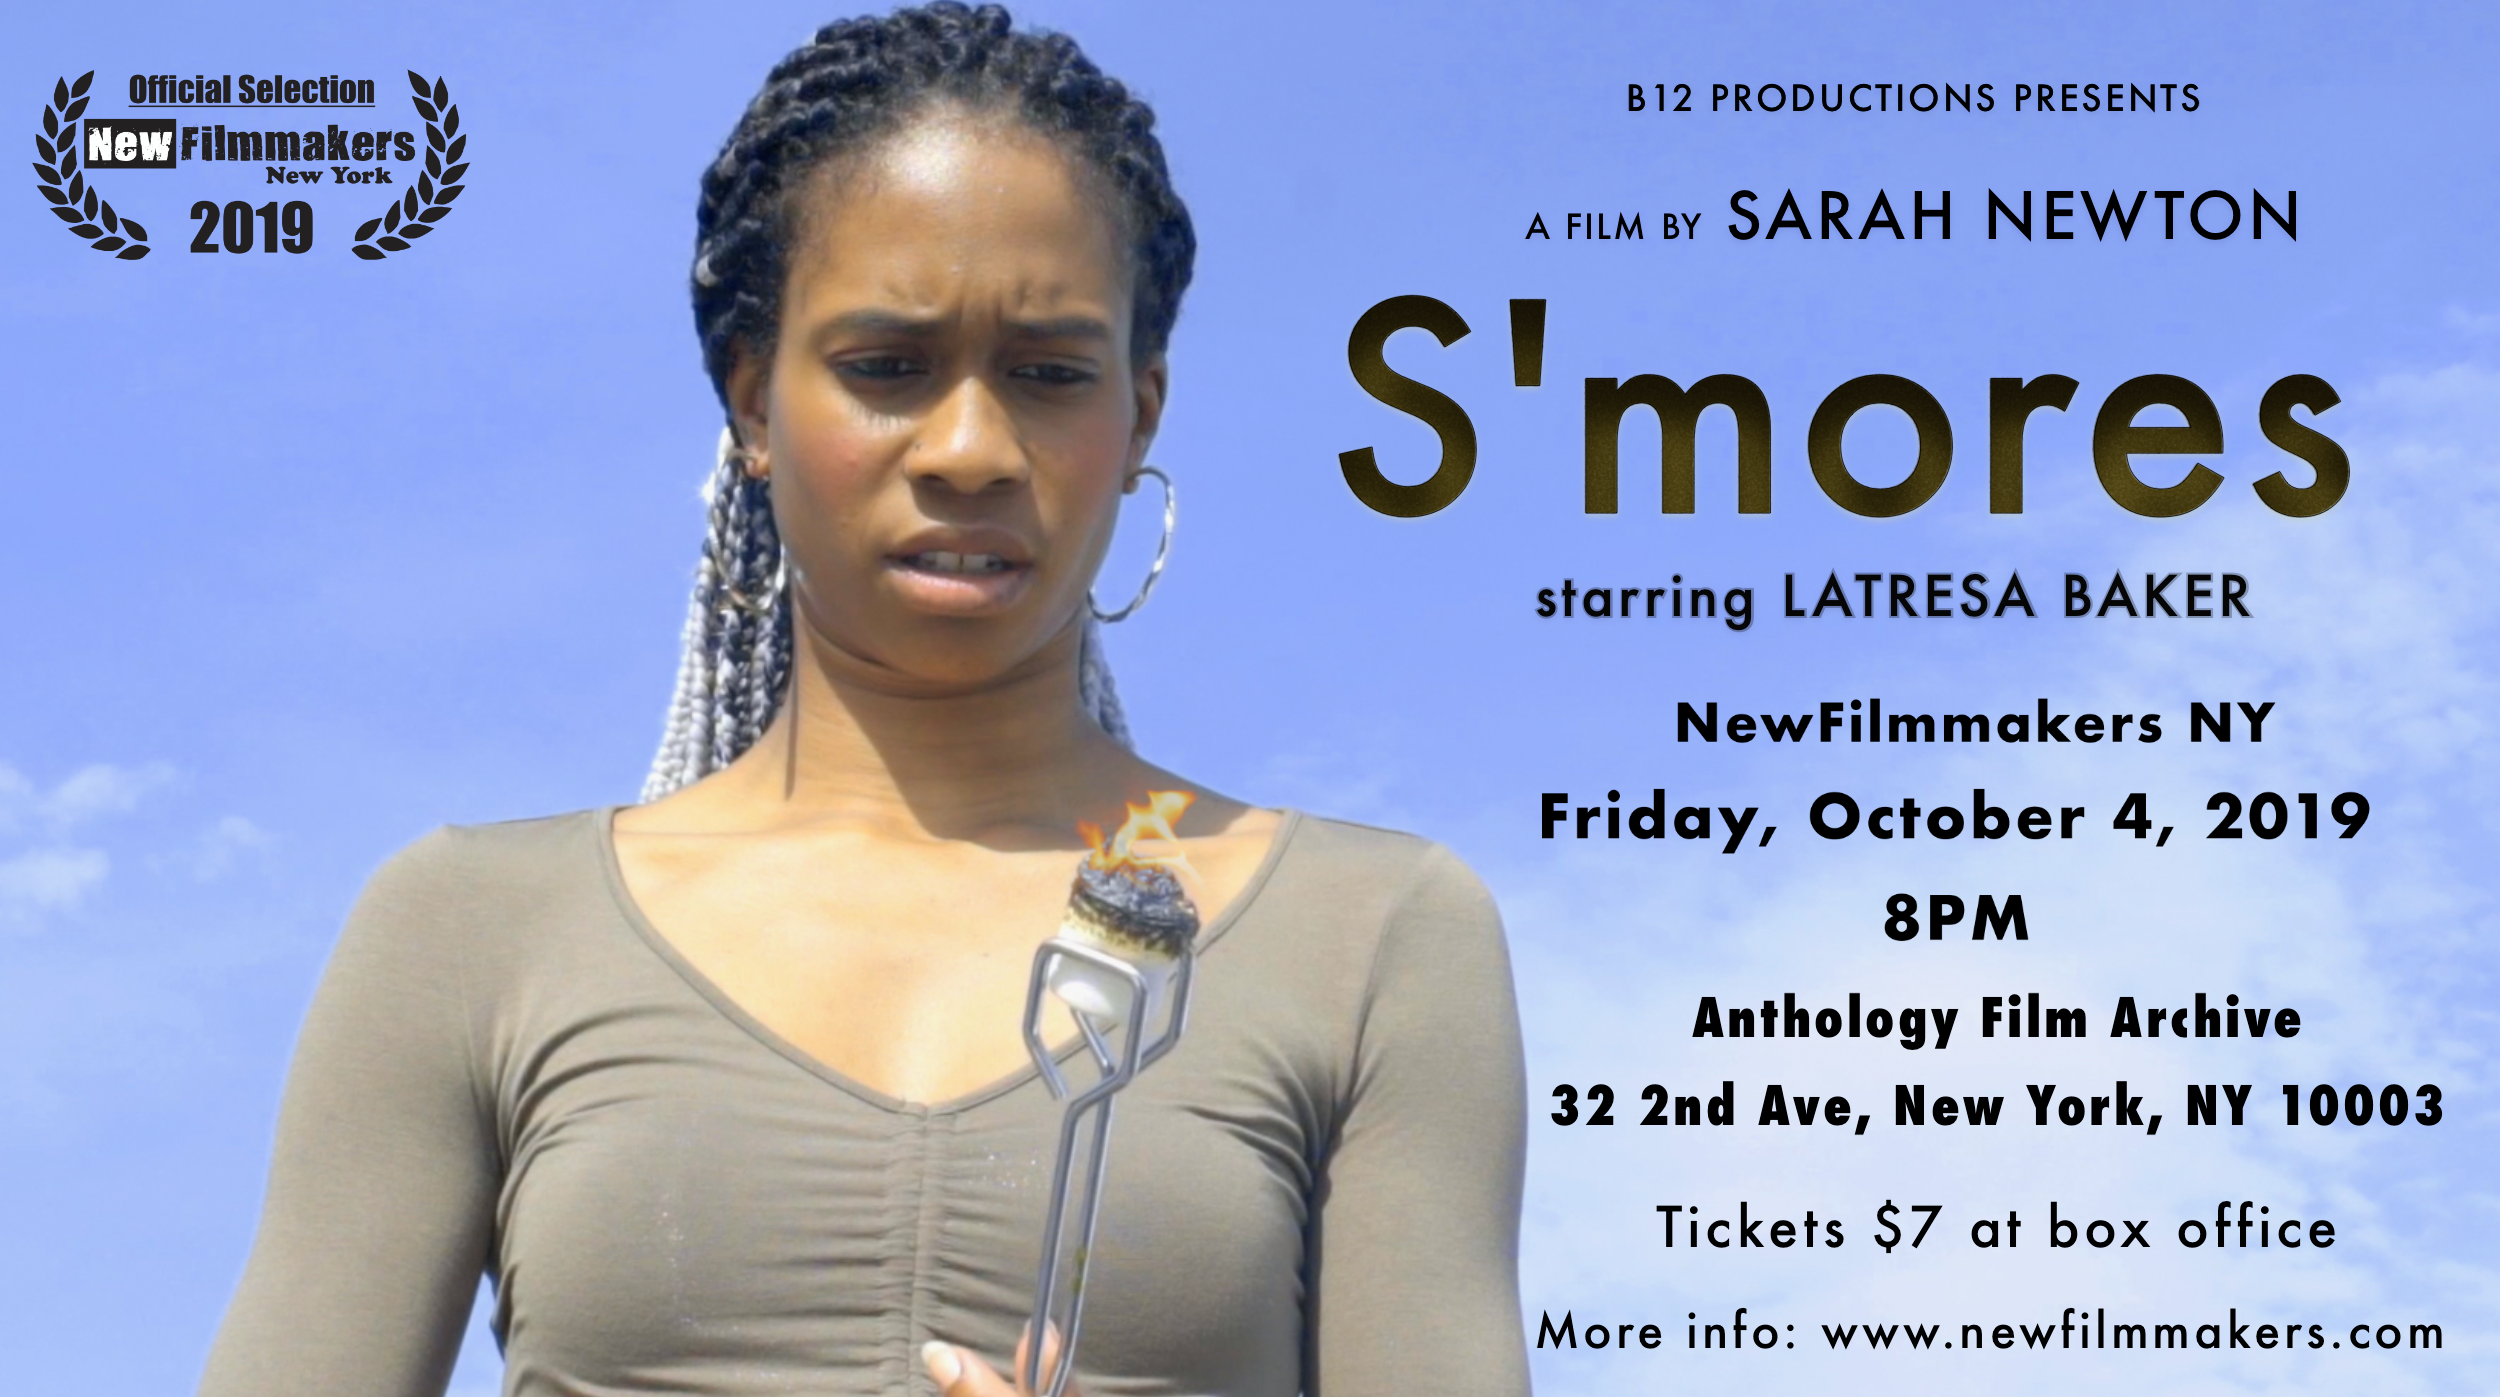 S'mores Poster Image NewFilmmakers.png